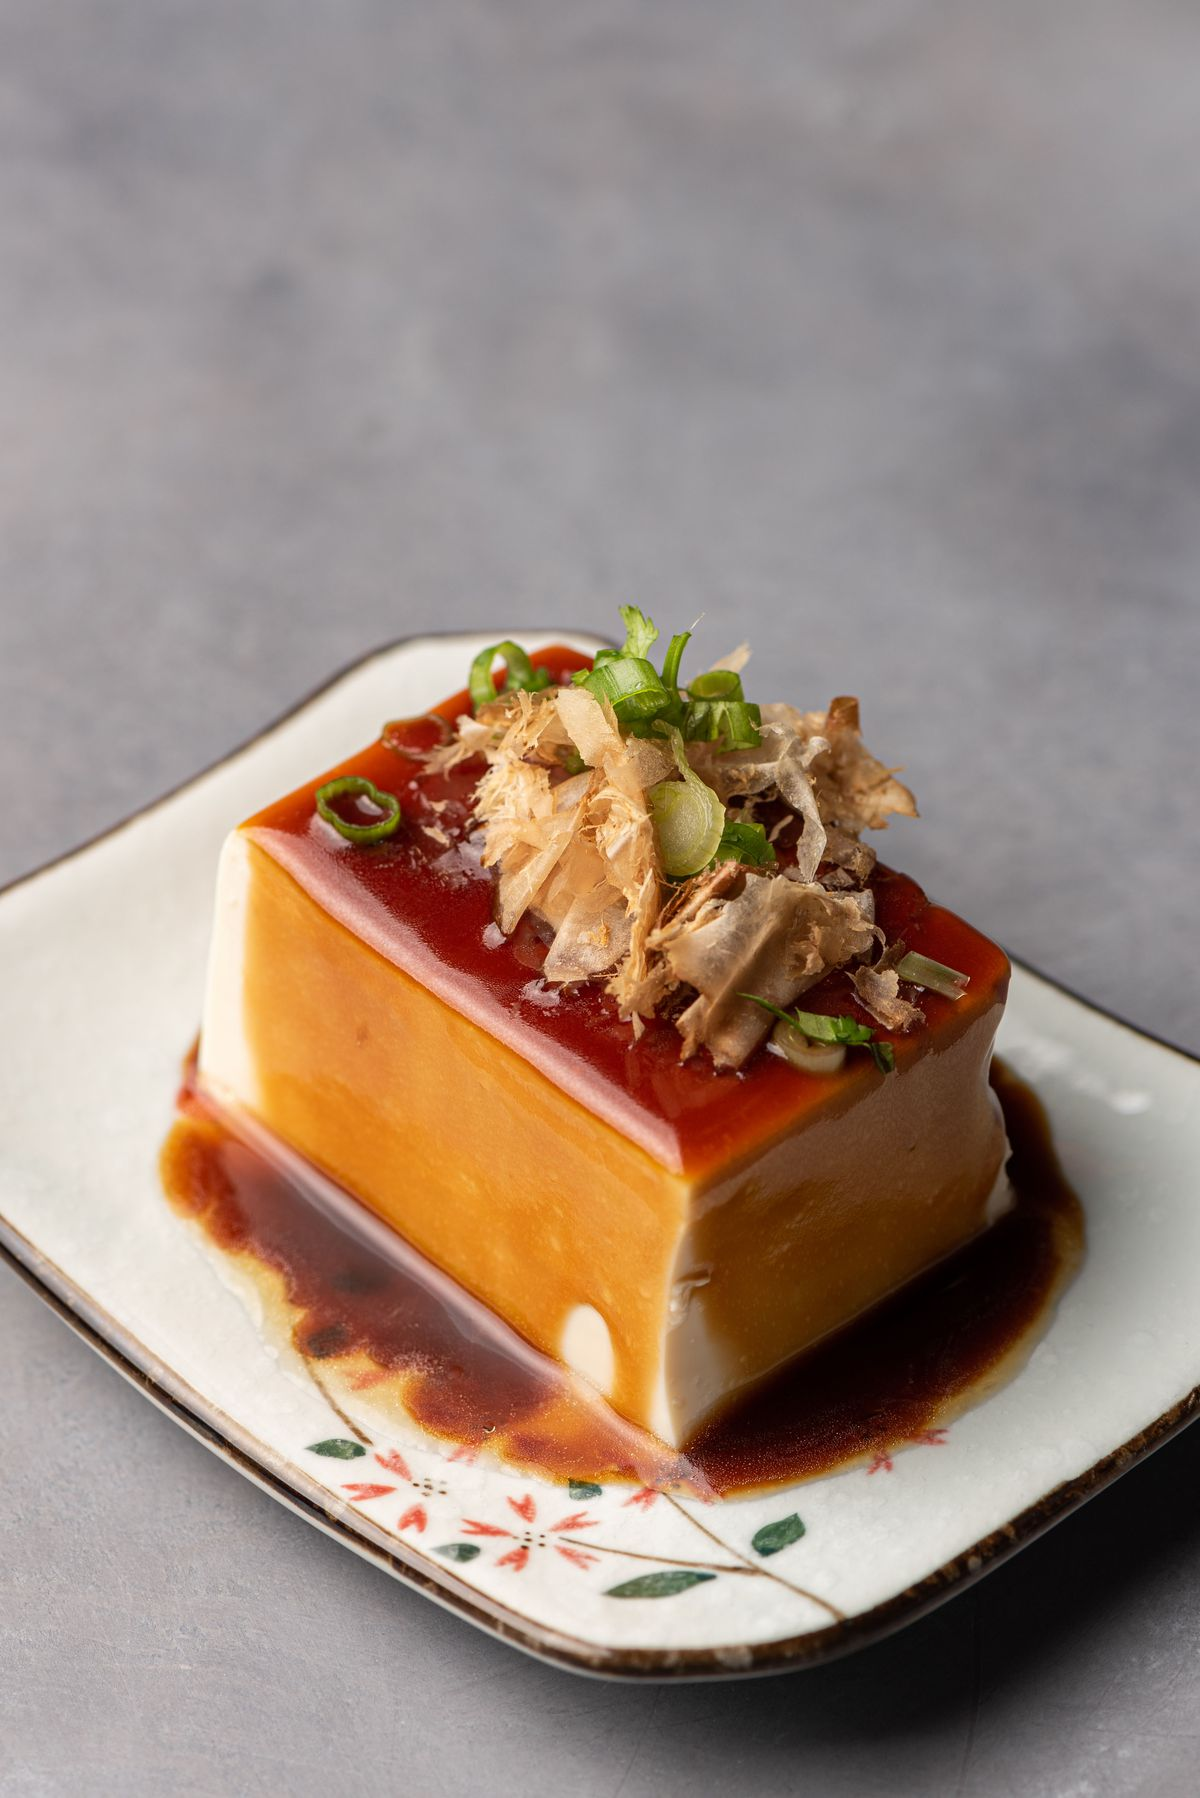 A large thick square of tofu with sauce.